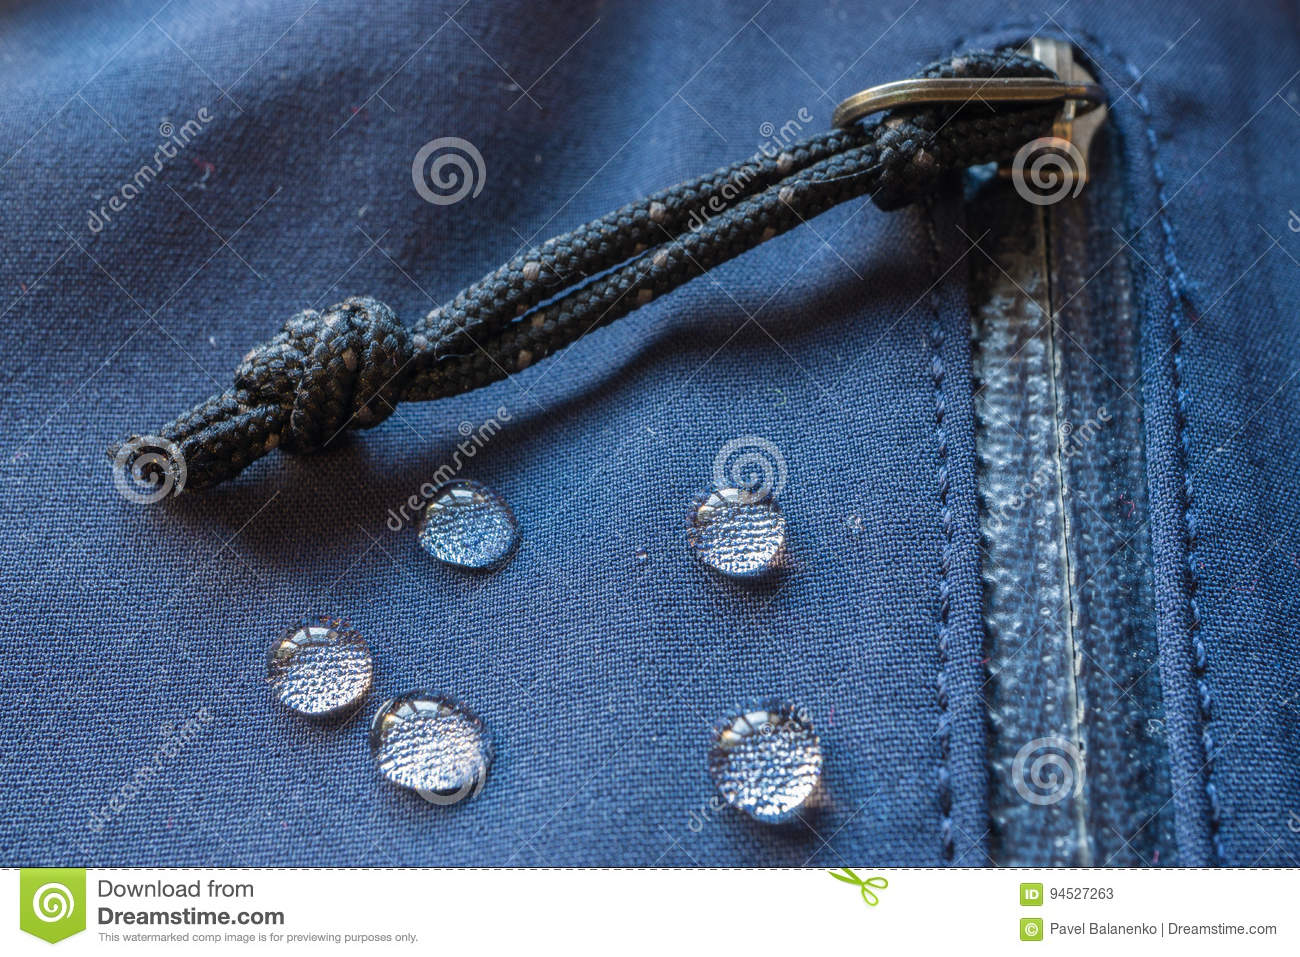 Large drops of water on waterproof clothes. zippers pocket fastener